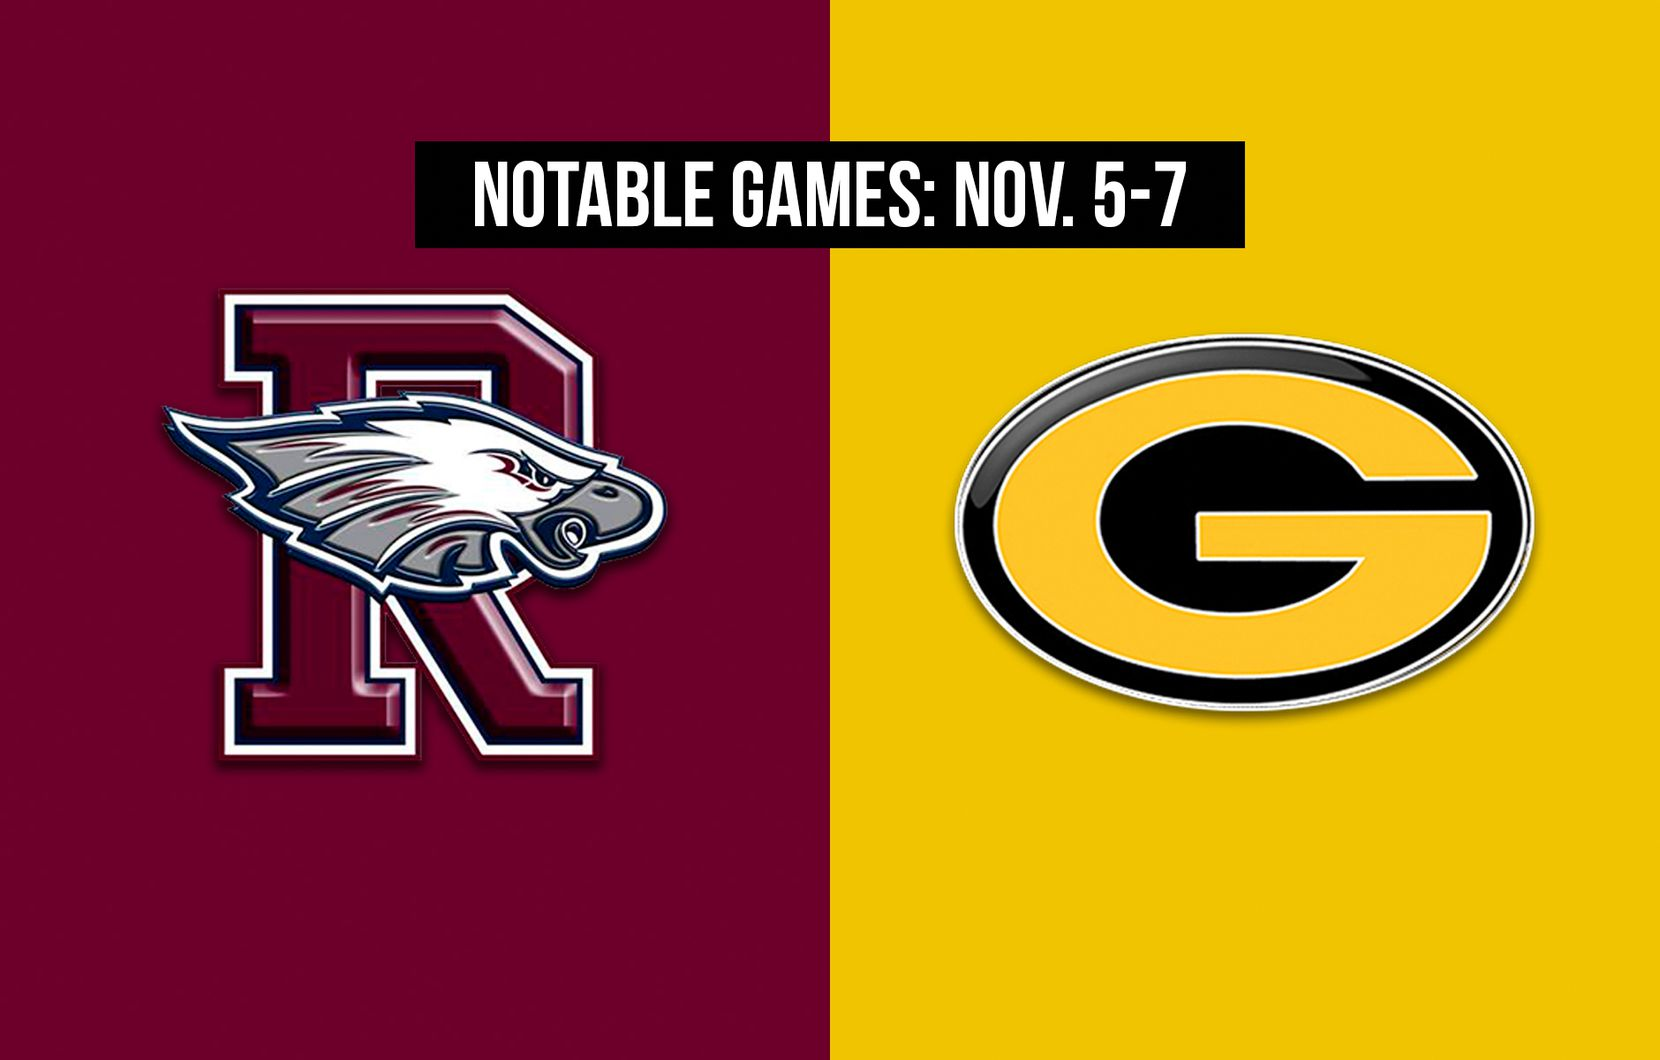 Notable games for the week of Nov. 5-7 of the 2020 season: Rowlett vs. Garland.